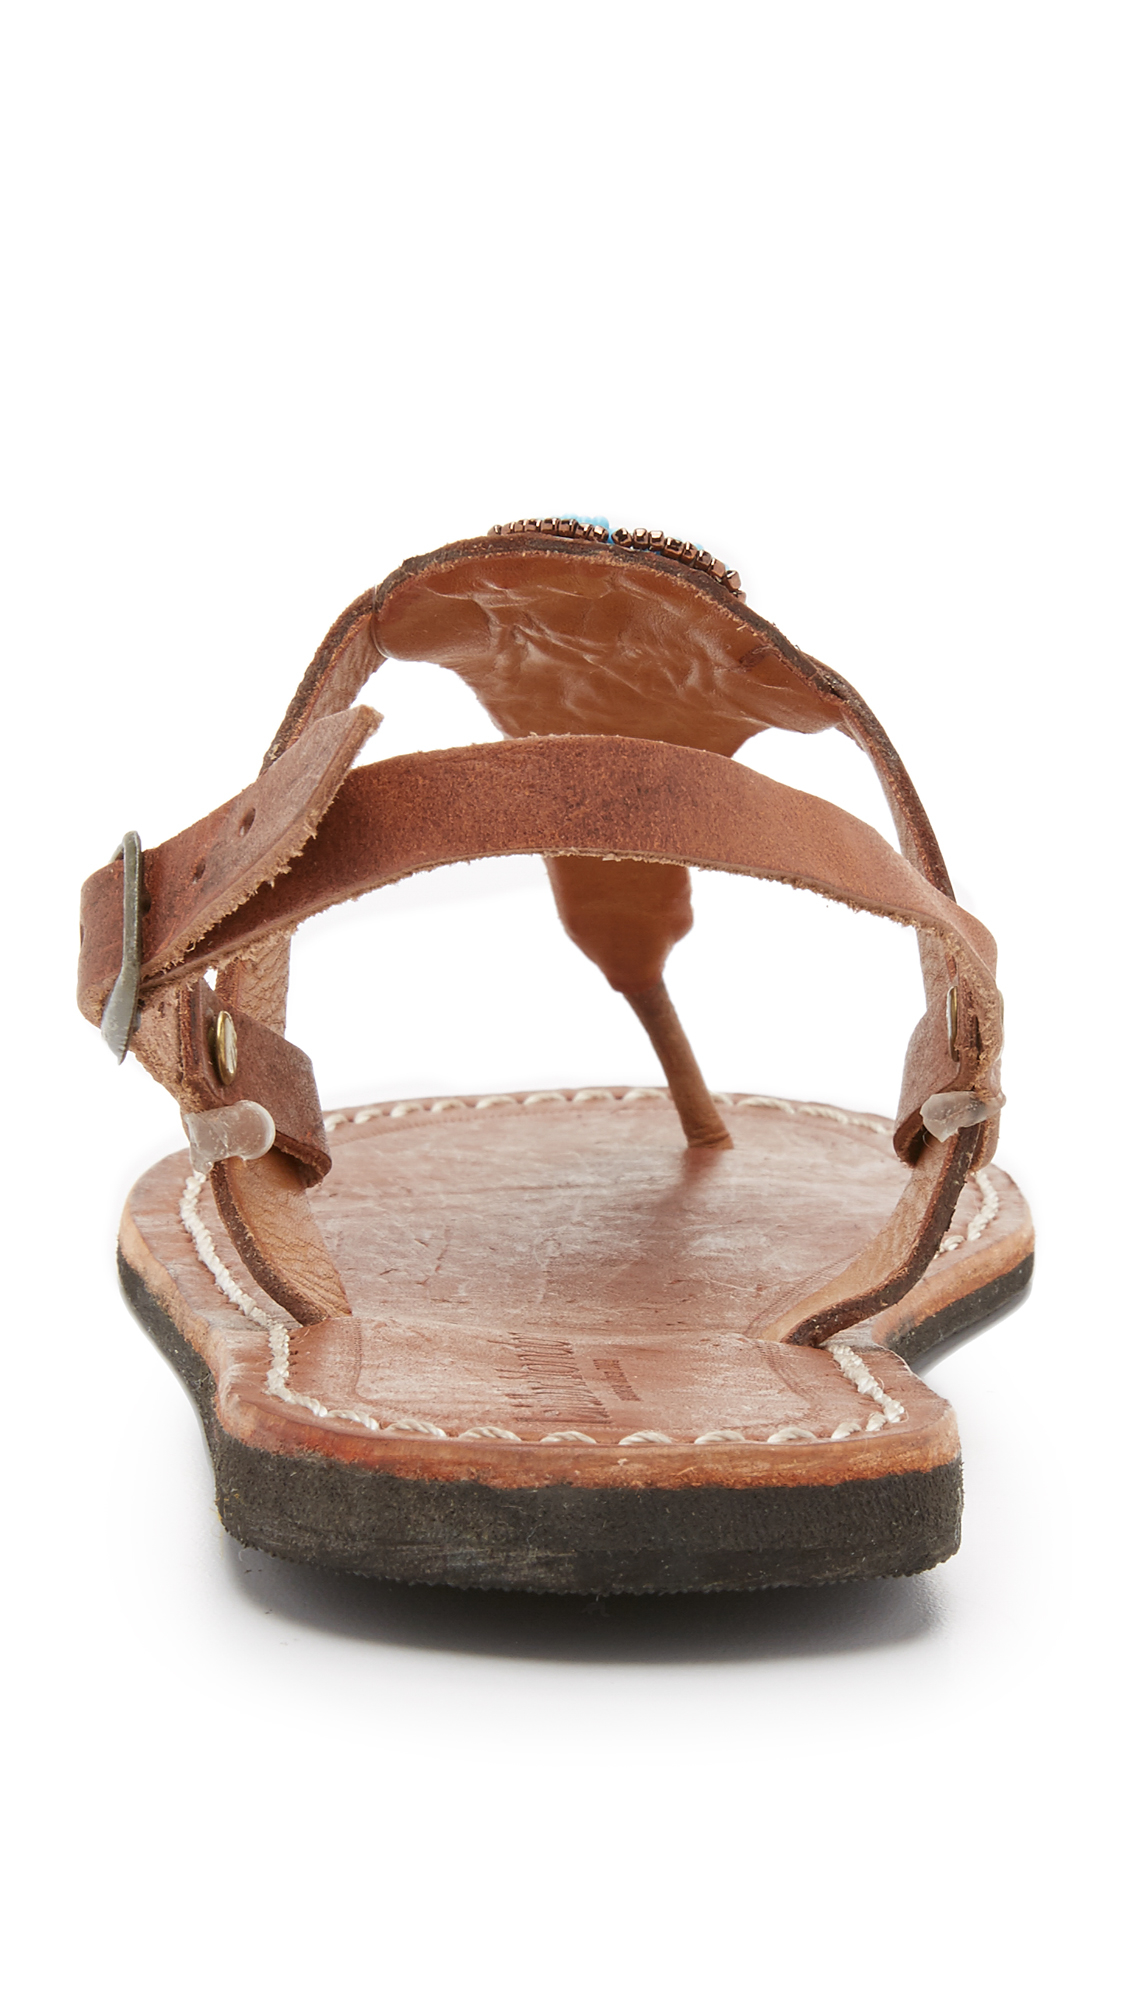 59a30385ad780 Lyst - Laidbacklondon Lucas Beaded Thong Sandals in Brown